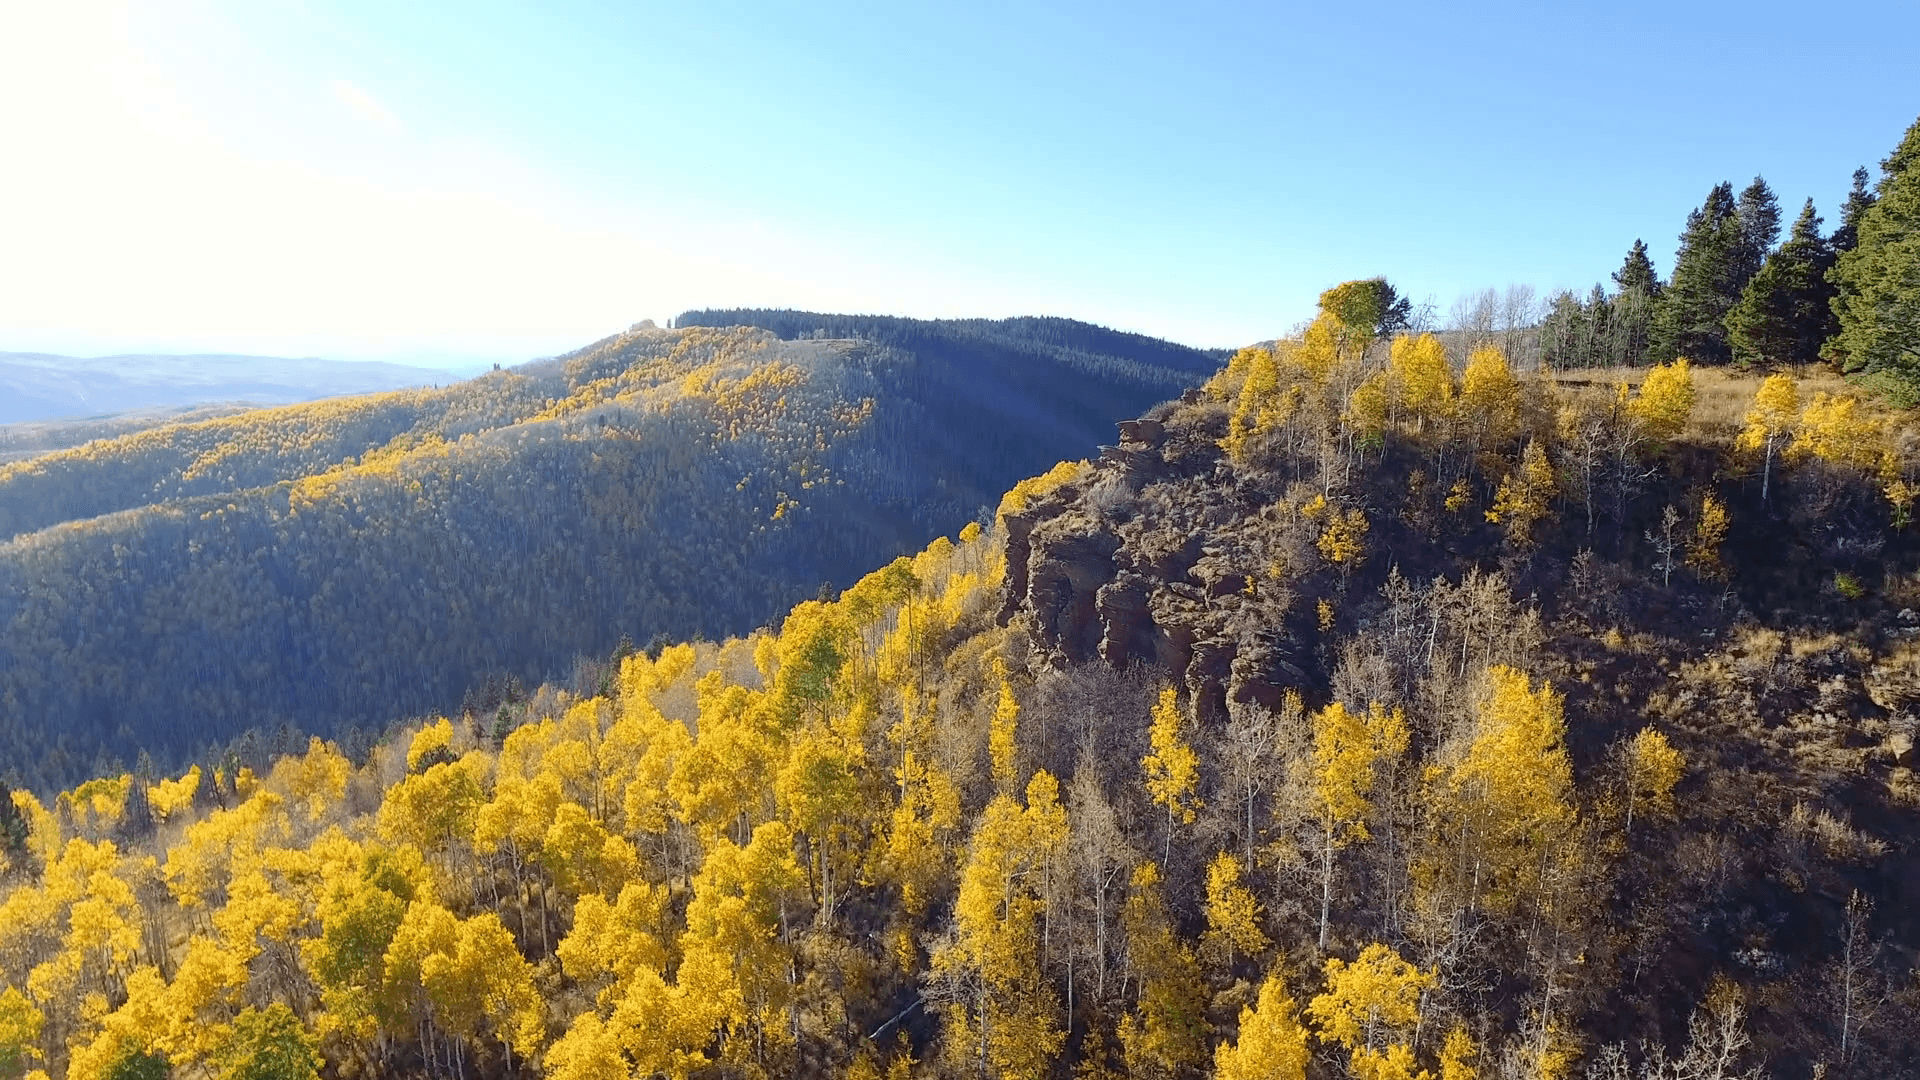 Flying past a cliff surrounded by fall foliage in Autumn in the Rocky Mountains